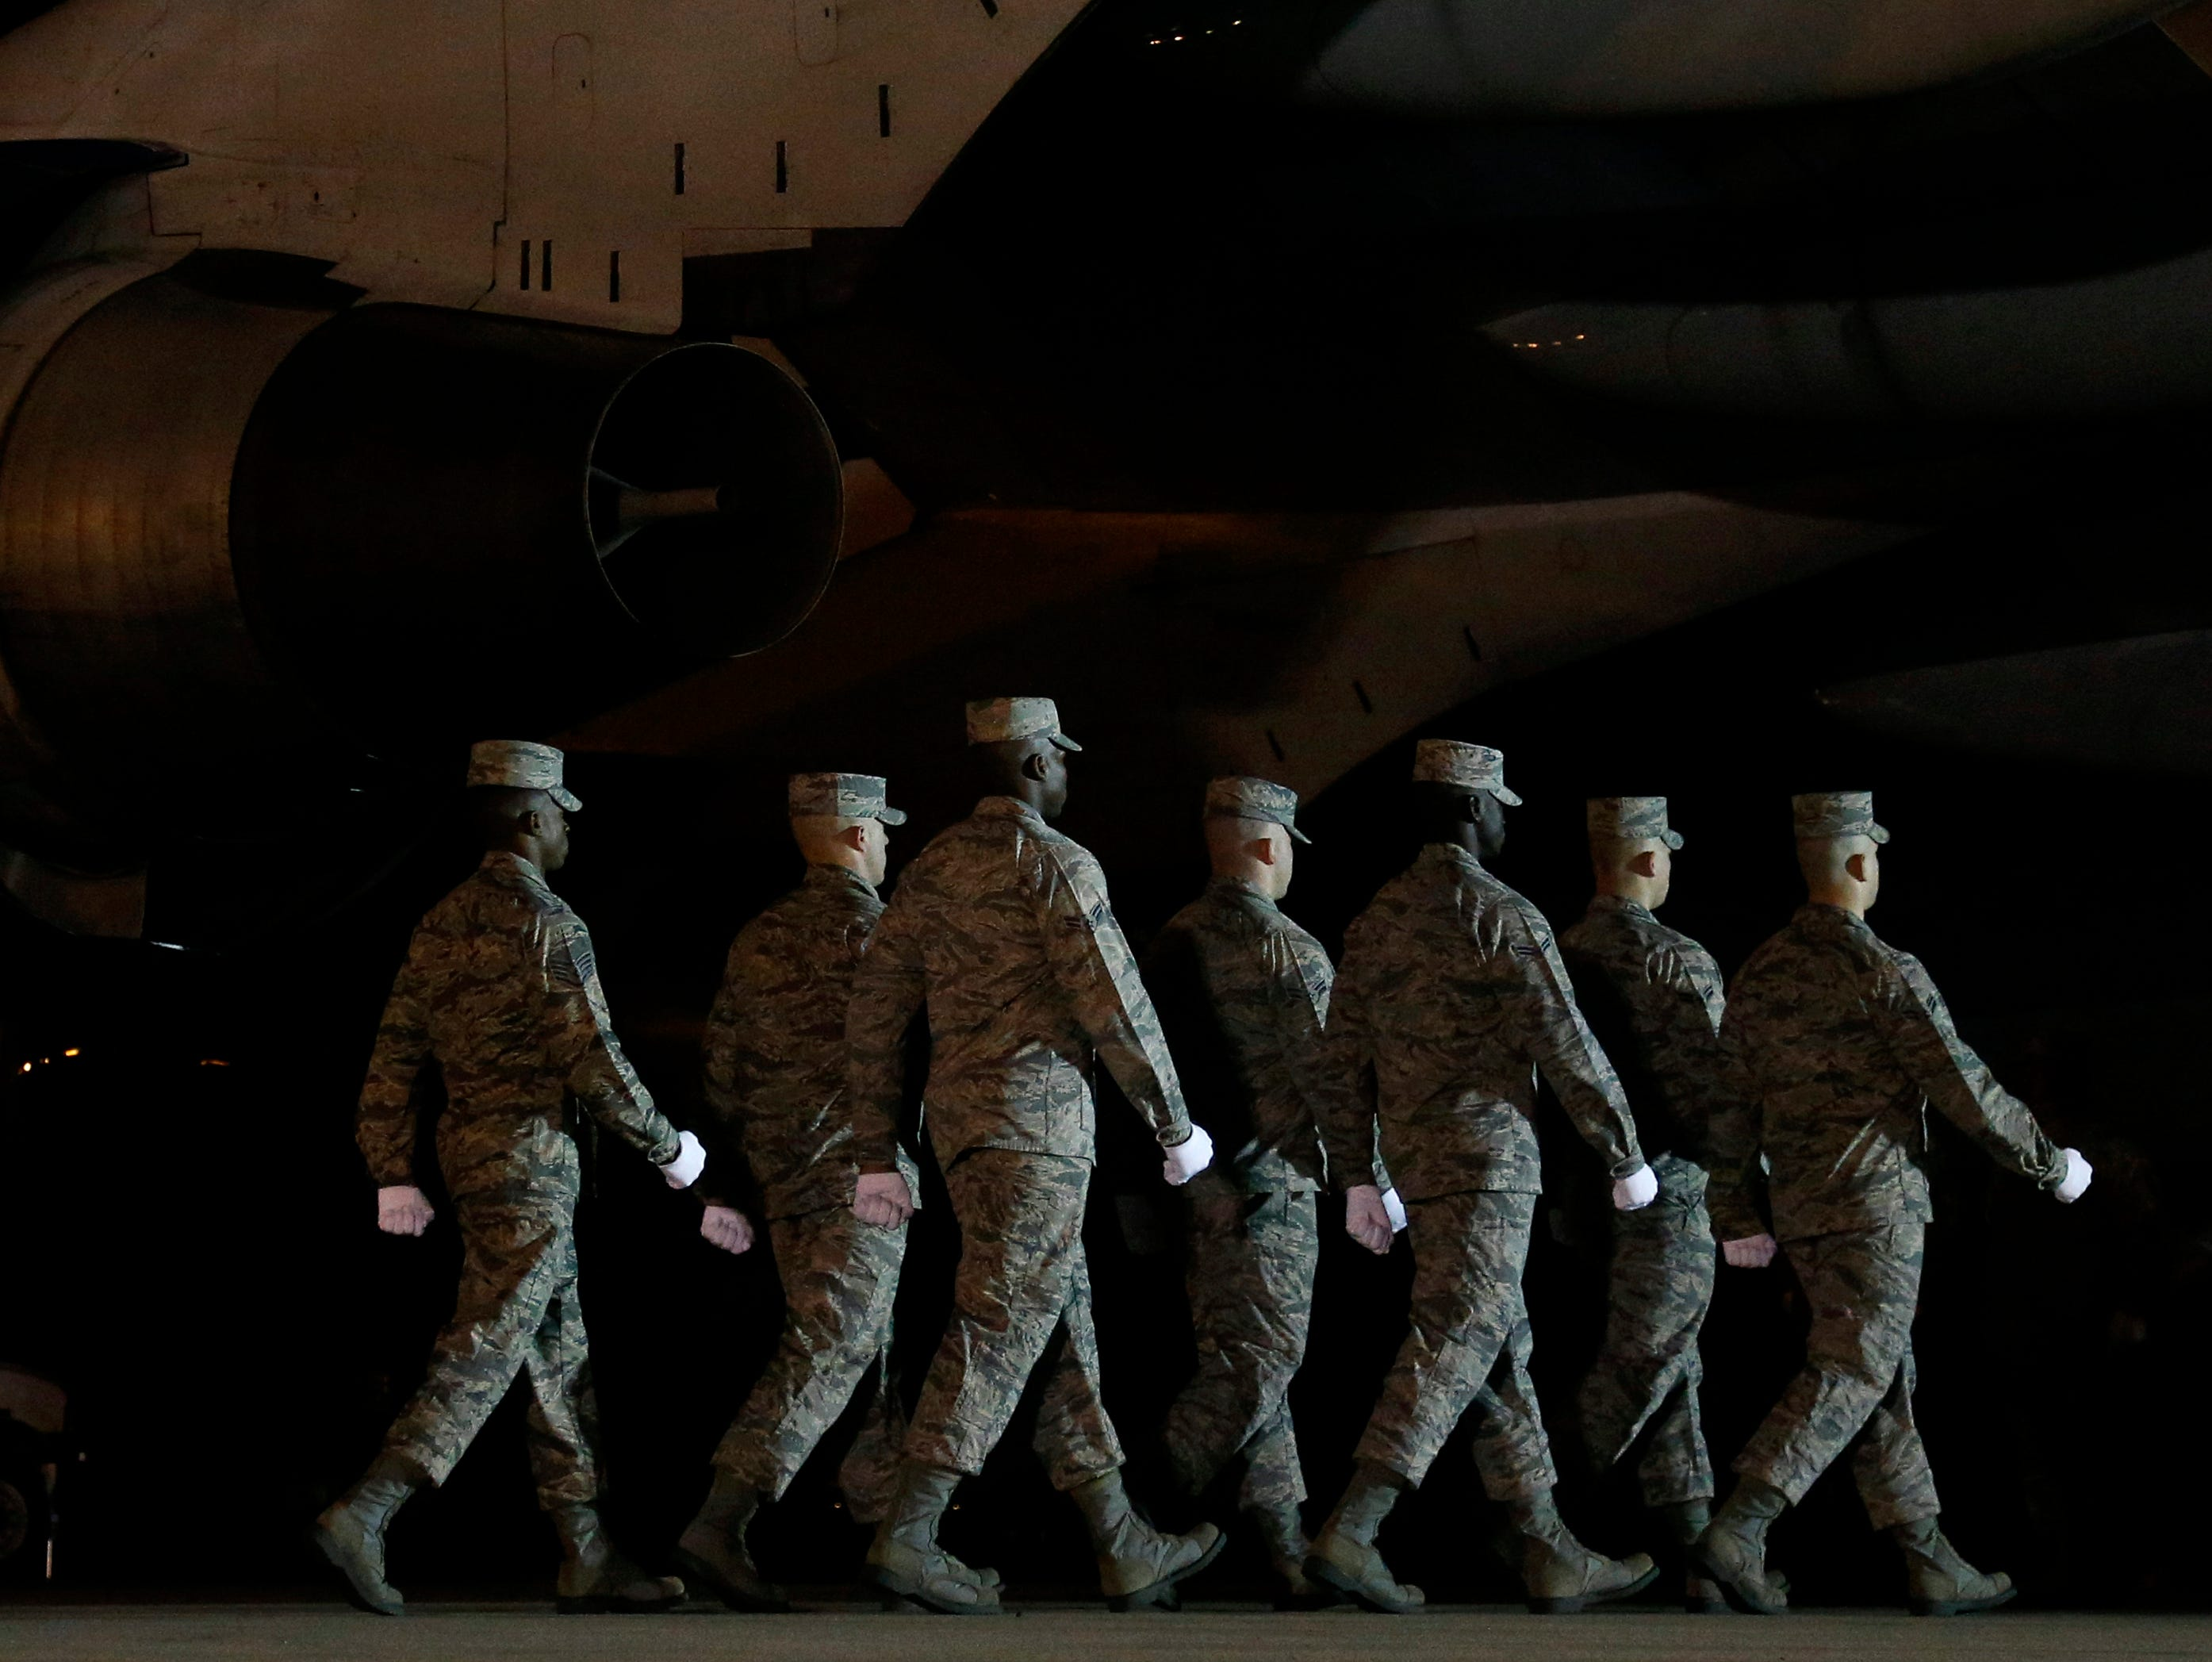 A U.S. Air Force carry team moves toward a transfer case containing the remains of Staff Sgt. Dylan J. Elchin, Friday, Nov. 30, 2018, at Dover Air Force Base, Del. According to the Department of Defense, Elchin, 25, of Hookstown, Pa., was killed Nov. 27, 2018, by a roadside bomb in Ghazni province, Afghanistan.